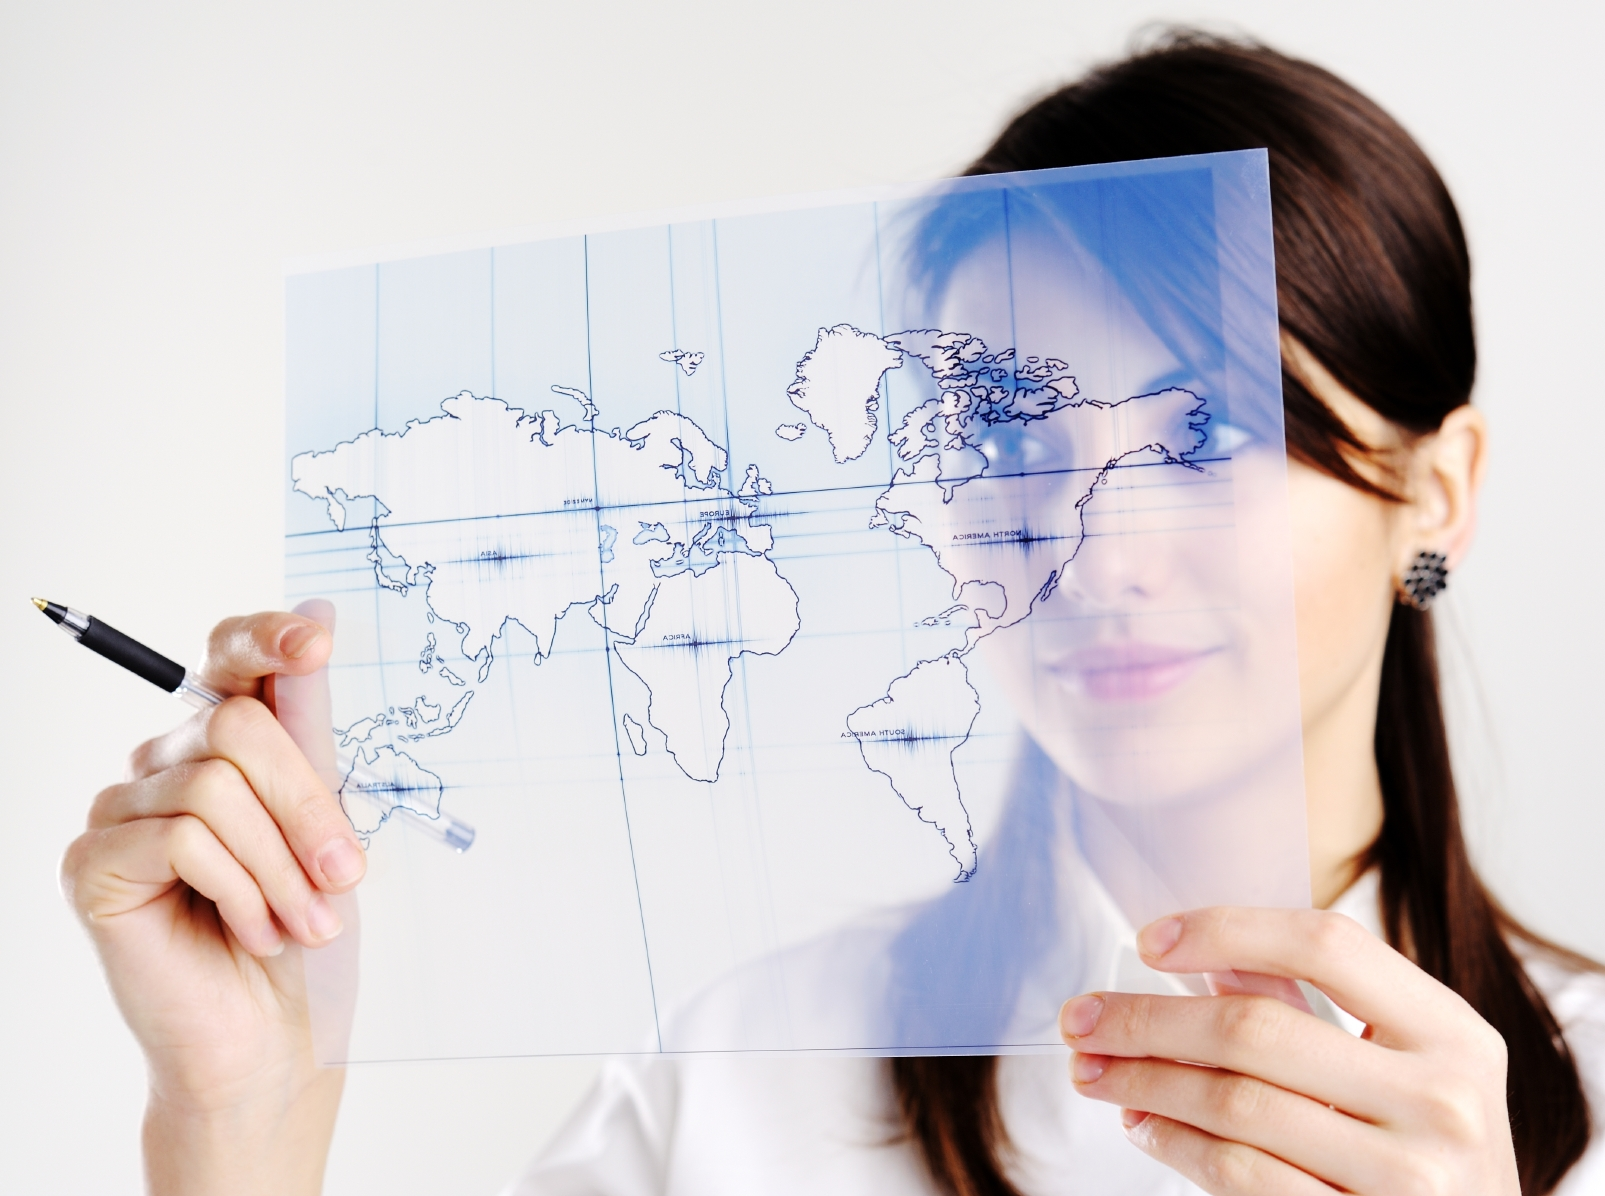 Woman looking a map symbolizing a person's map of reality